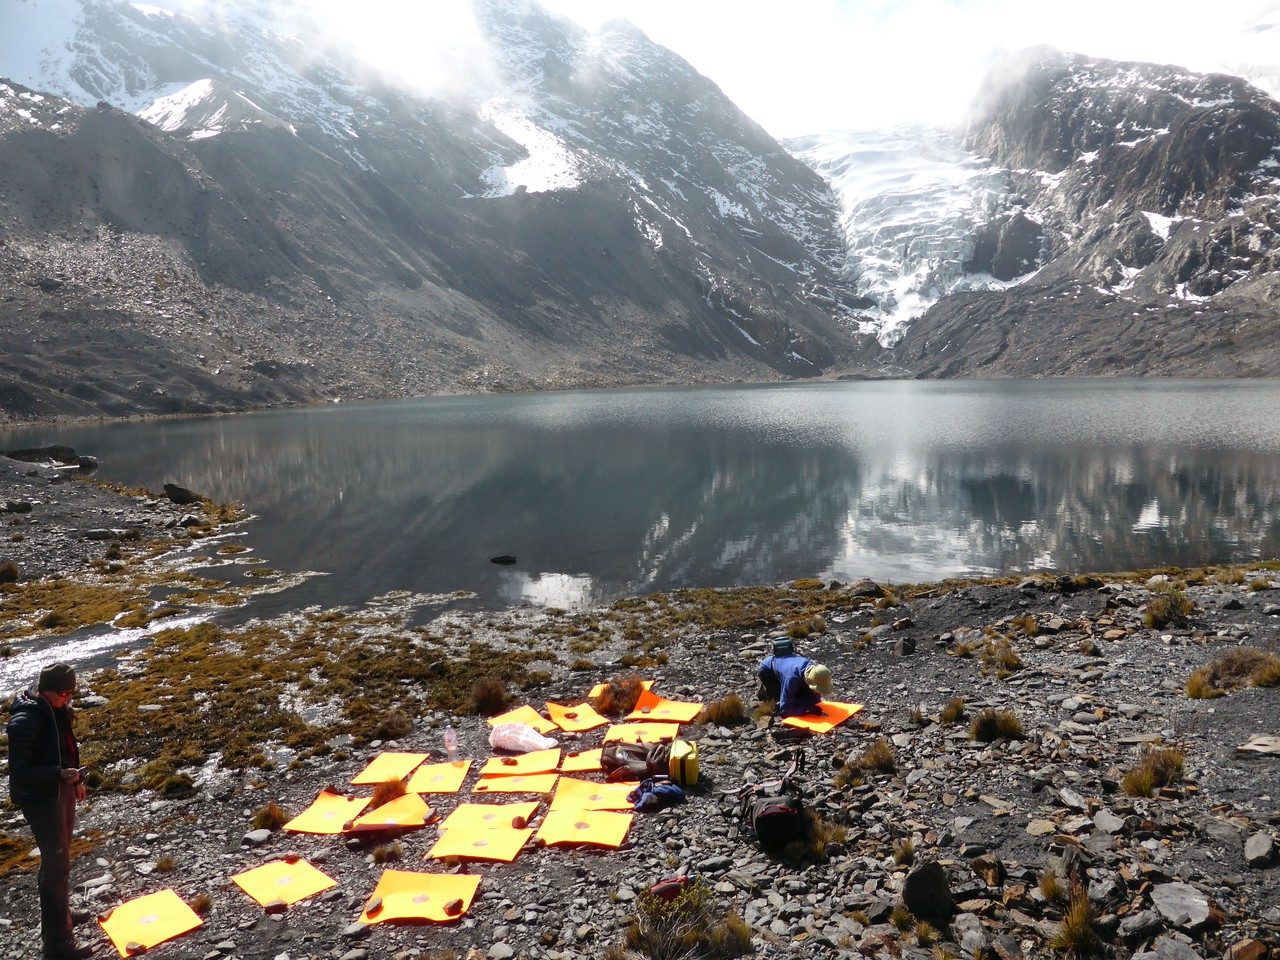 Field work in the Bolivian Andes (Credit: Simon Cook)